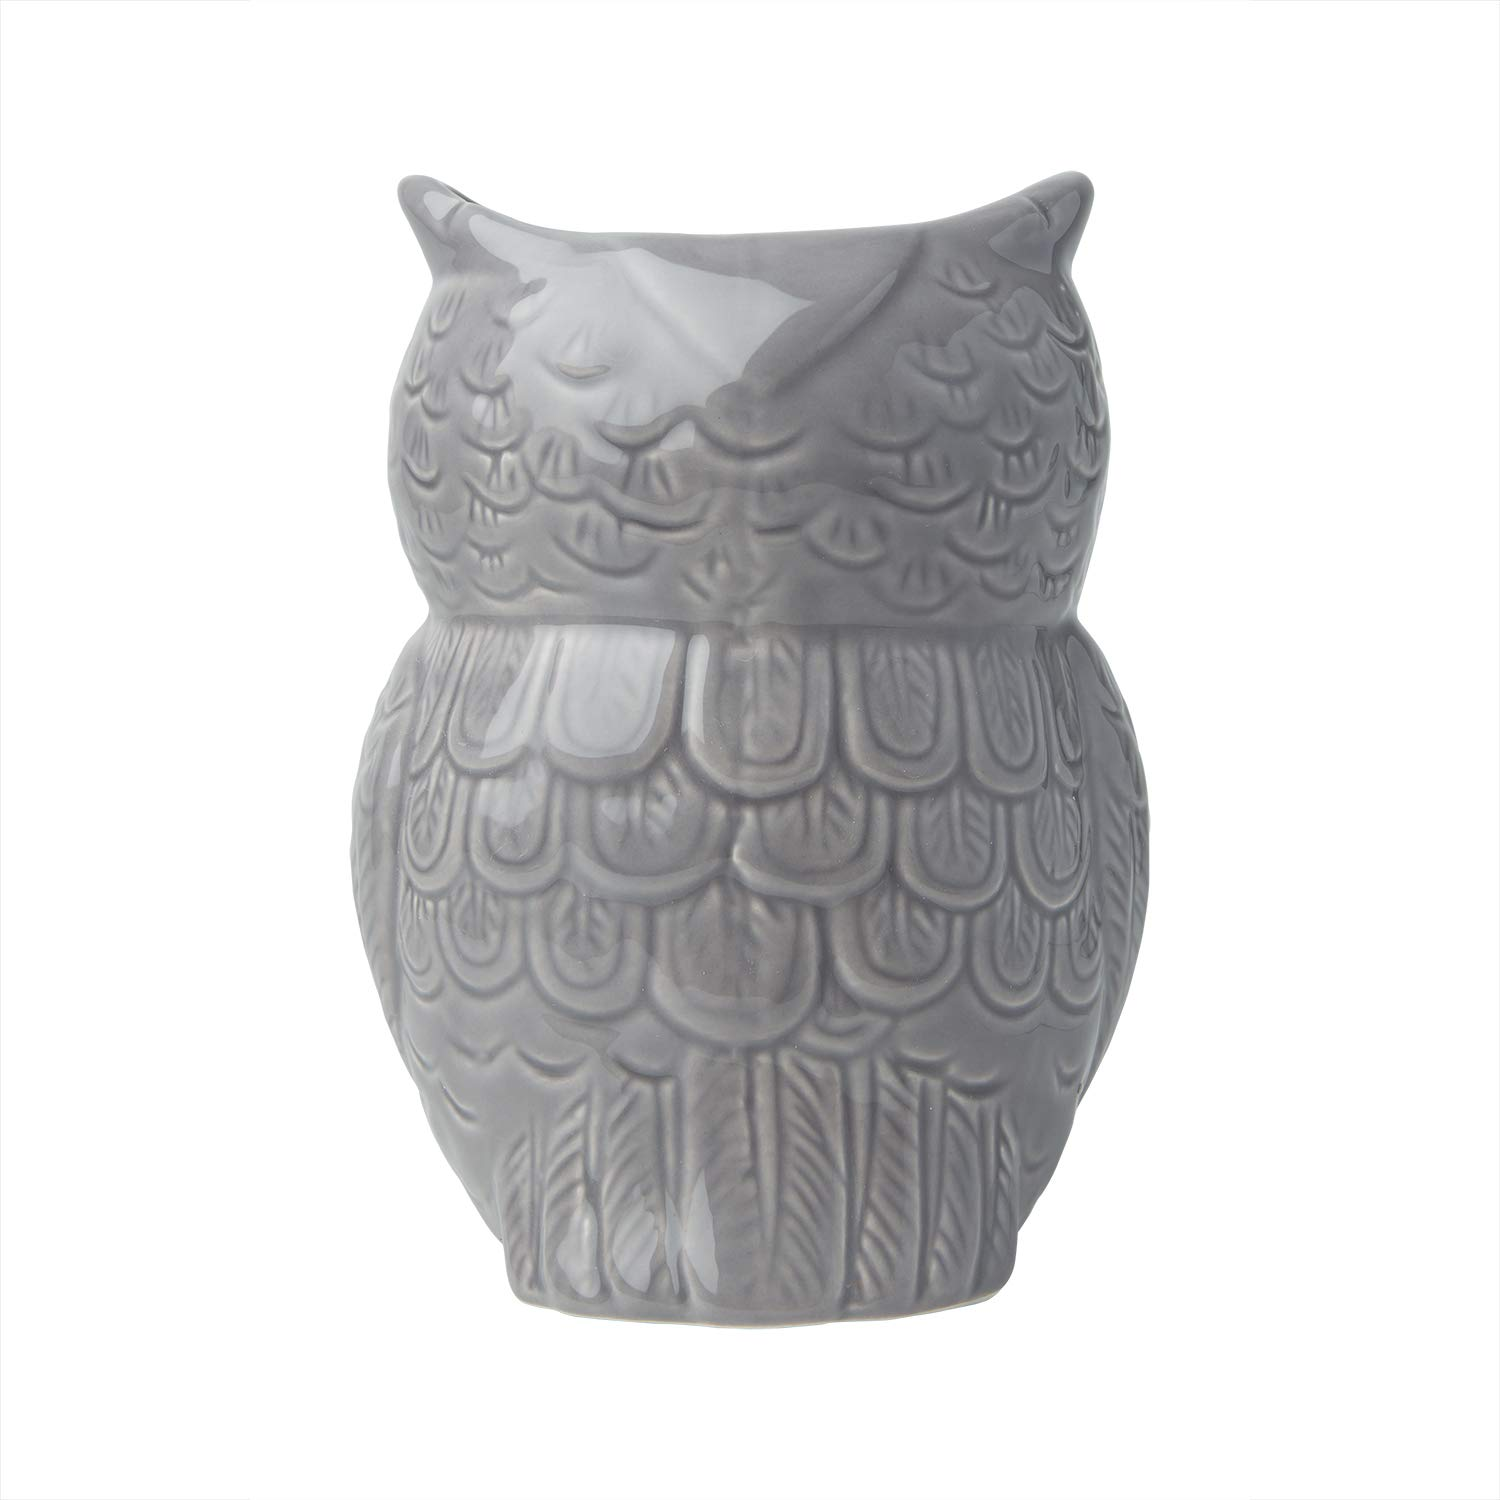 "Comfify Owl Utensil Holder Decorative Ceramic Cookware Crock & Organizer, in Lovely Grey Color - Utensil Caddy and Perfect Kitchen Ceramic Décor Gift - 5"" x 7"" x 4"" Size by Comfify (Image #5)"